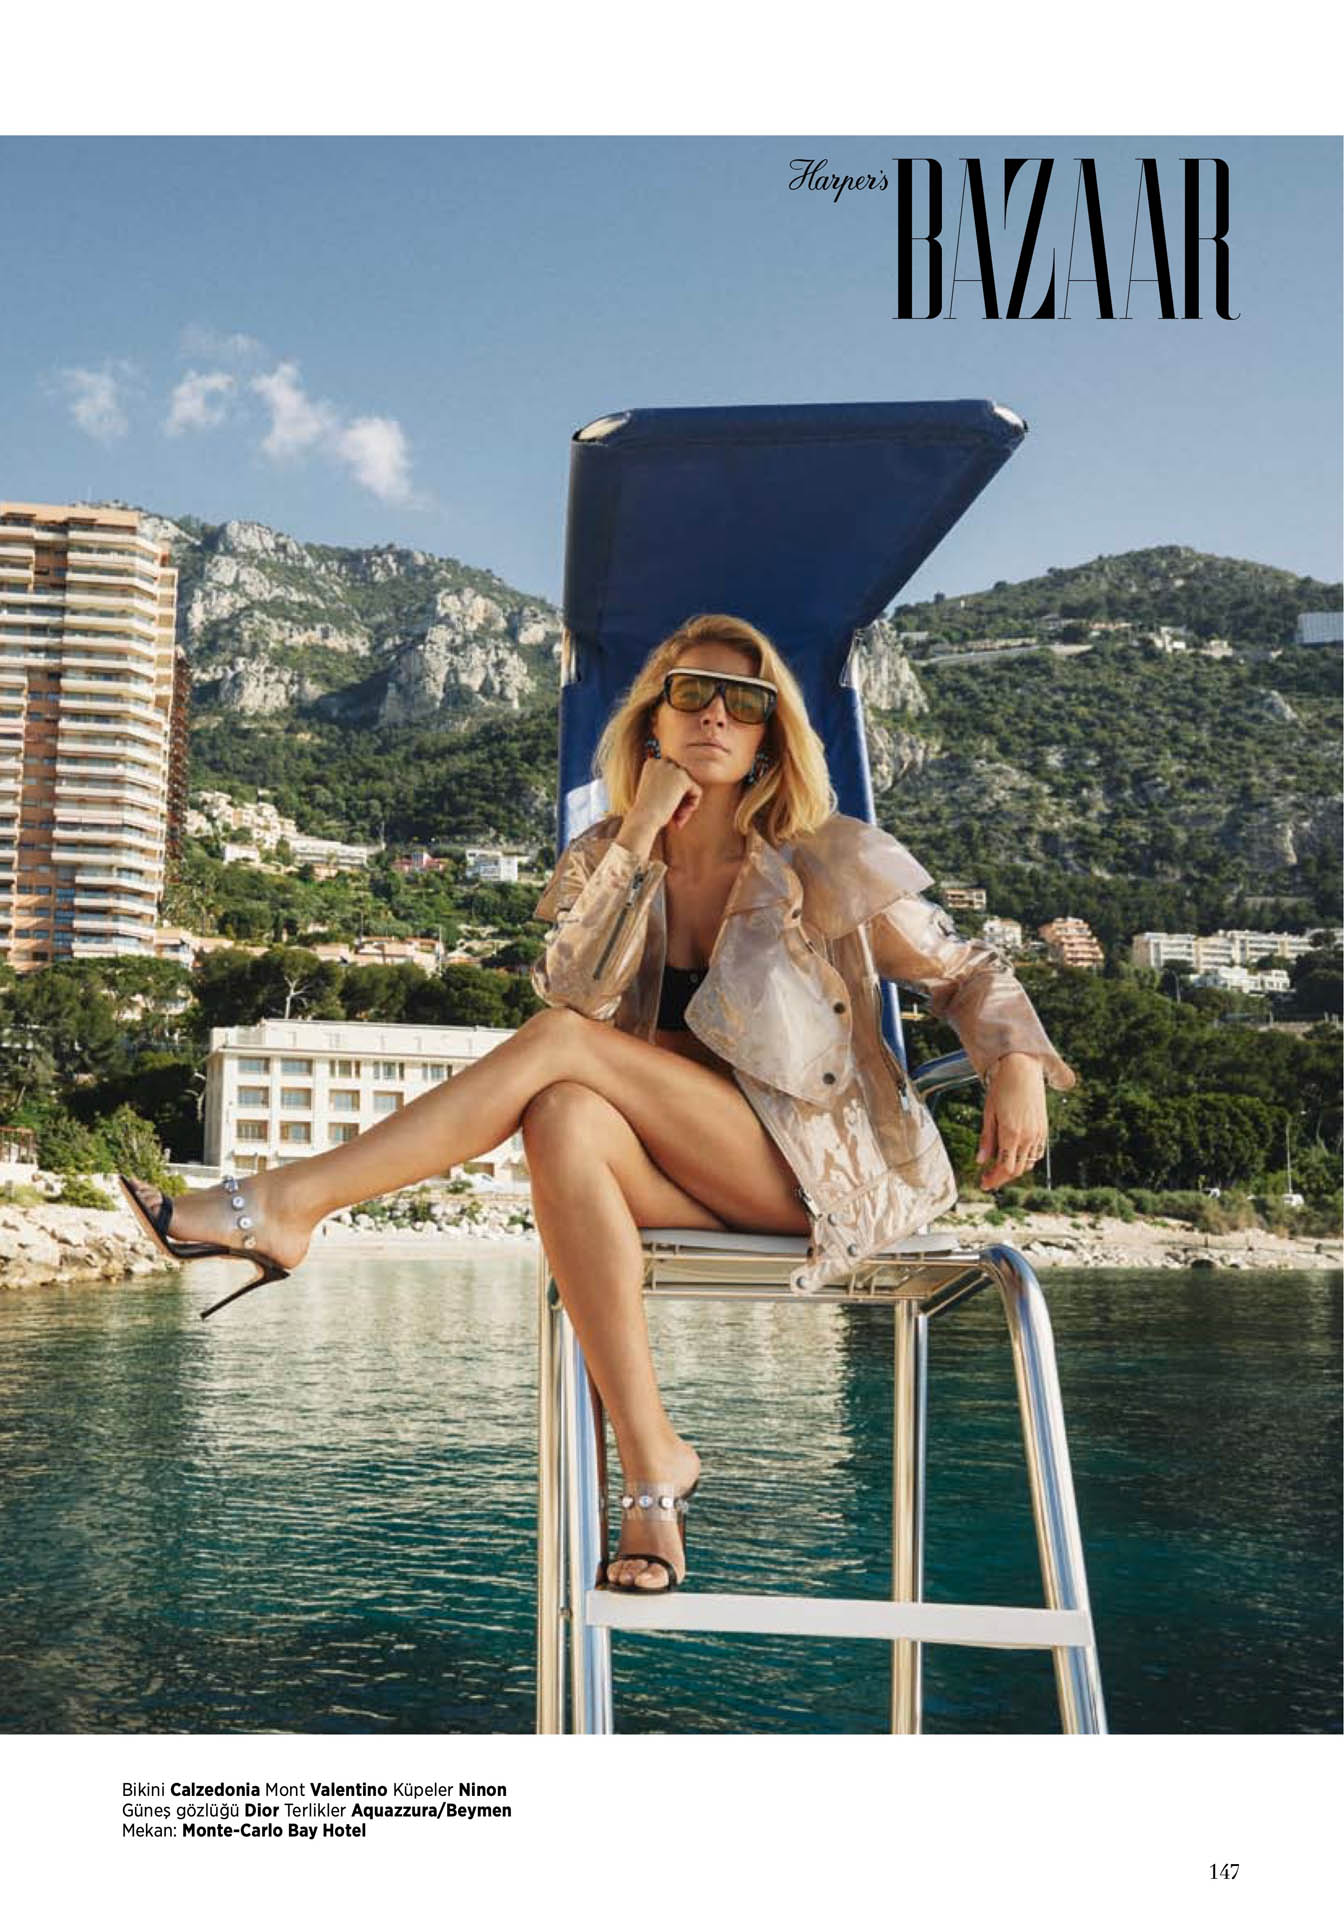 Harpers Bazaar Turkey page 146 to 164 - June 2018 128-2